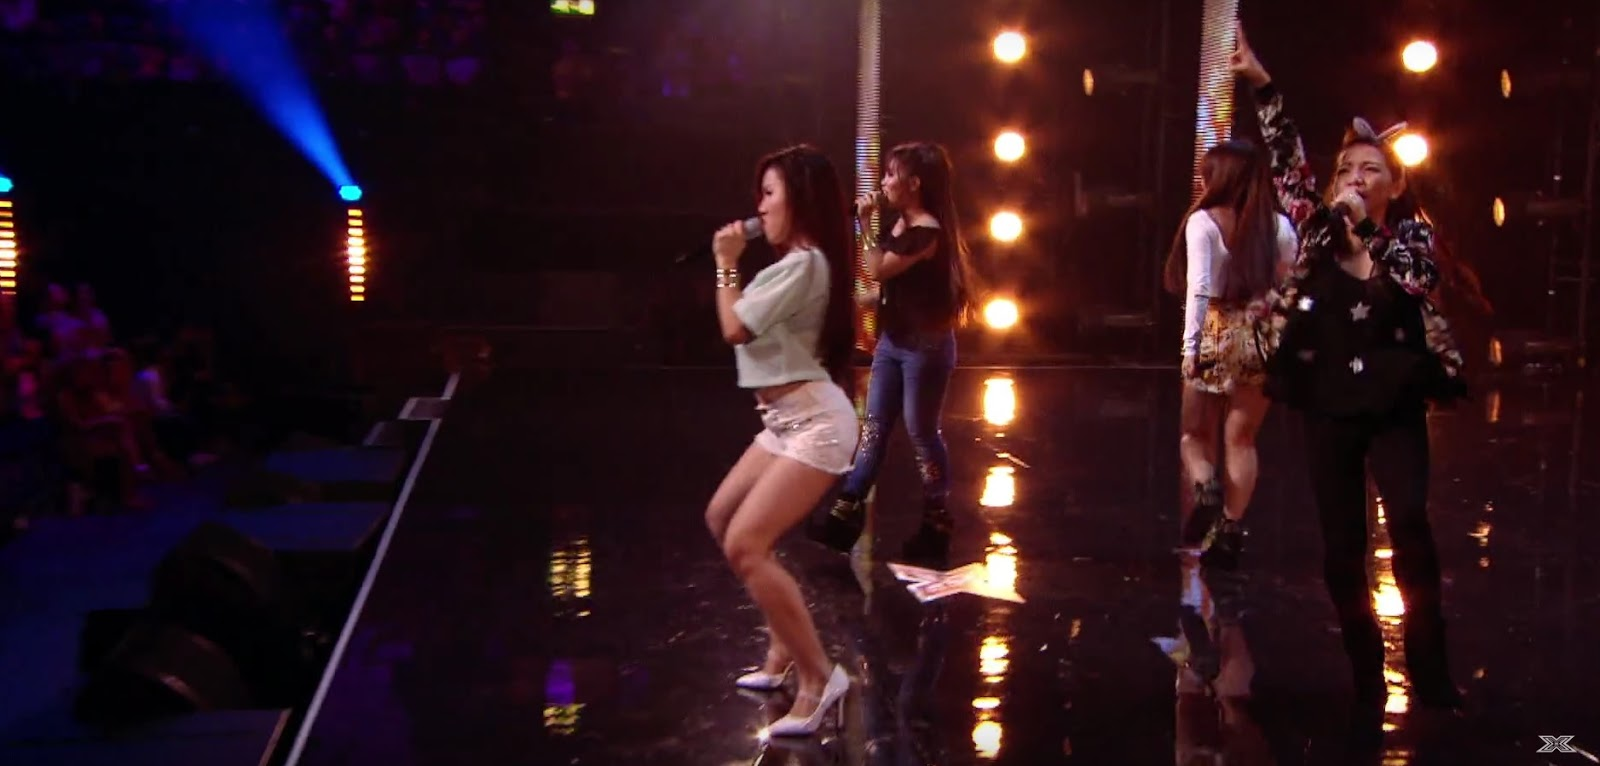 4th IMPACT, X-FACTOR UK 27